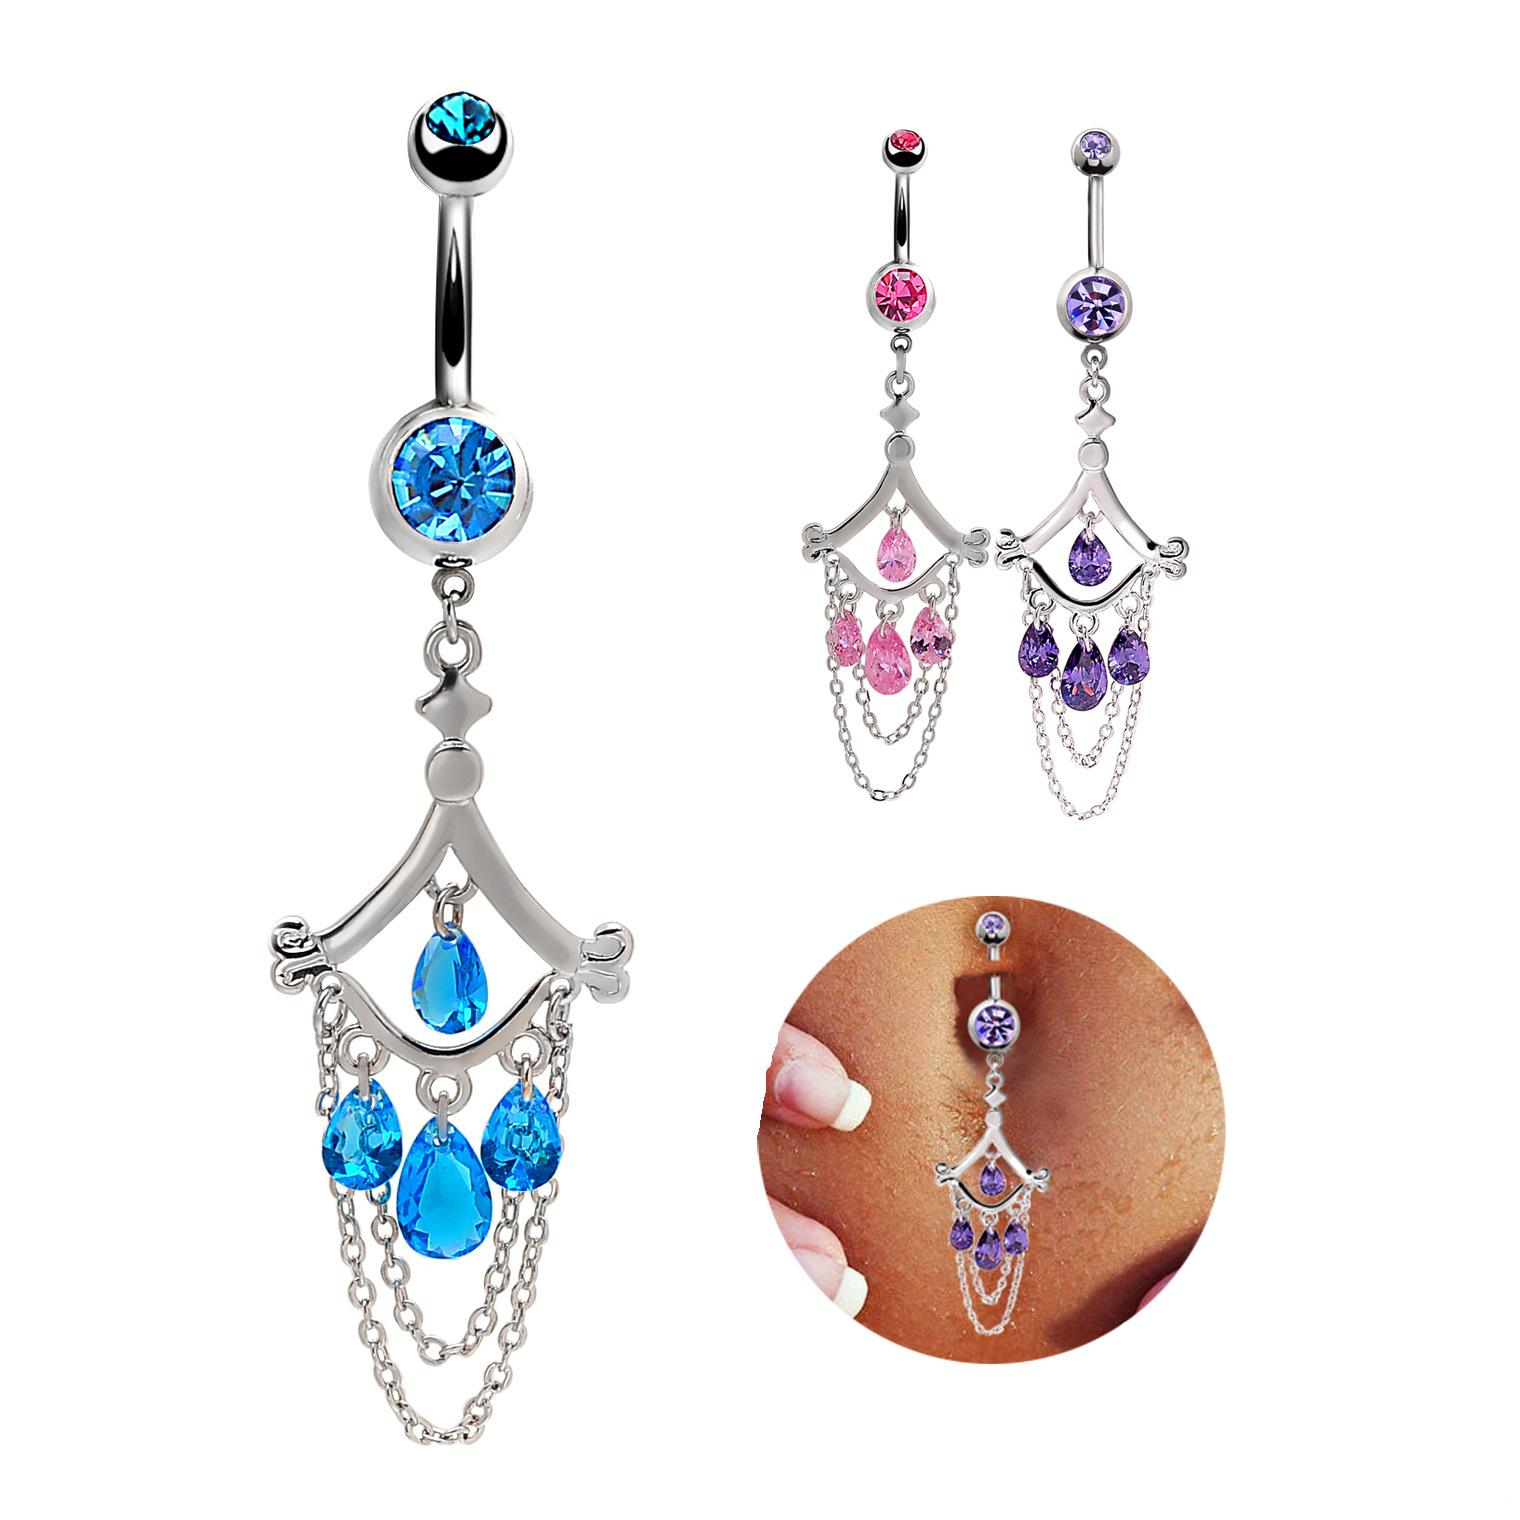 Wholesale European and American body piercing, belly button, belly dancing, ornament, exaggerated umbilical decoration